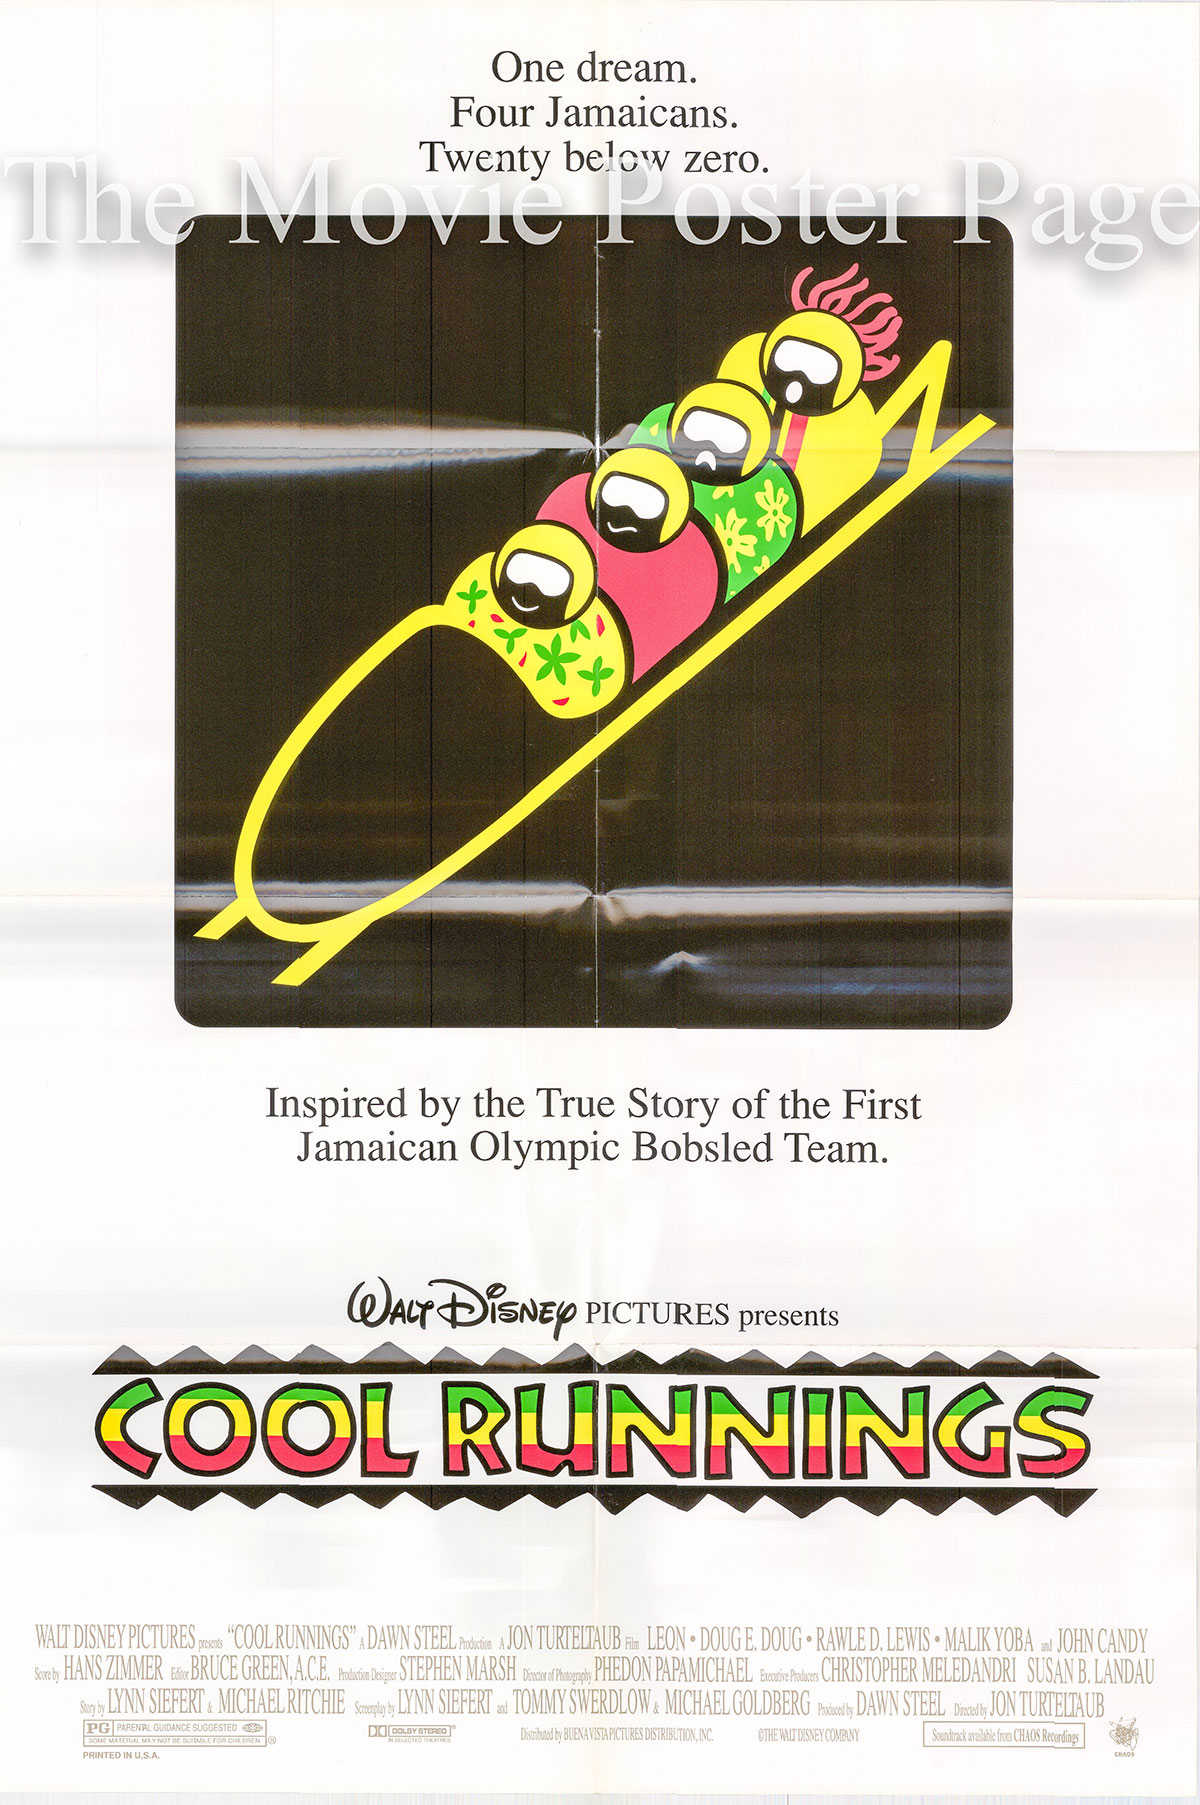 Pictured is a US one-sheet poster for the 1993 John Turteltaub film Cool Runnings starring John Candy as Derice Bannock.